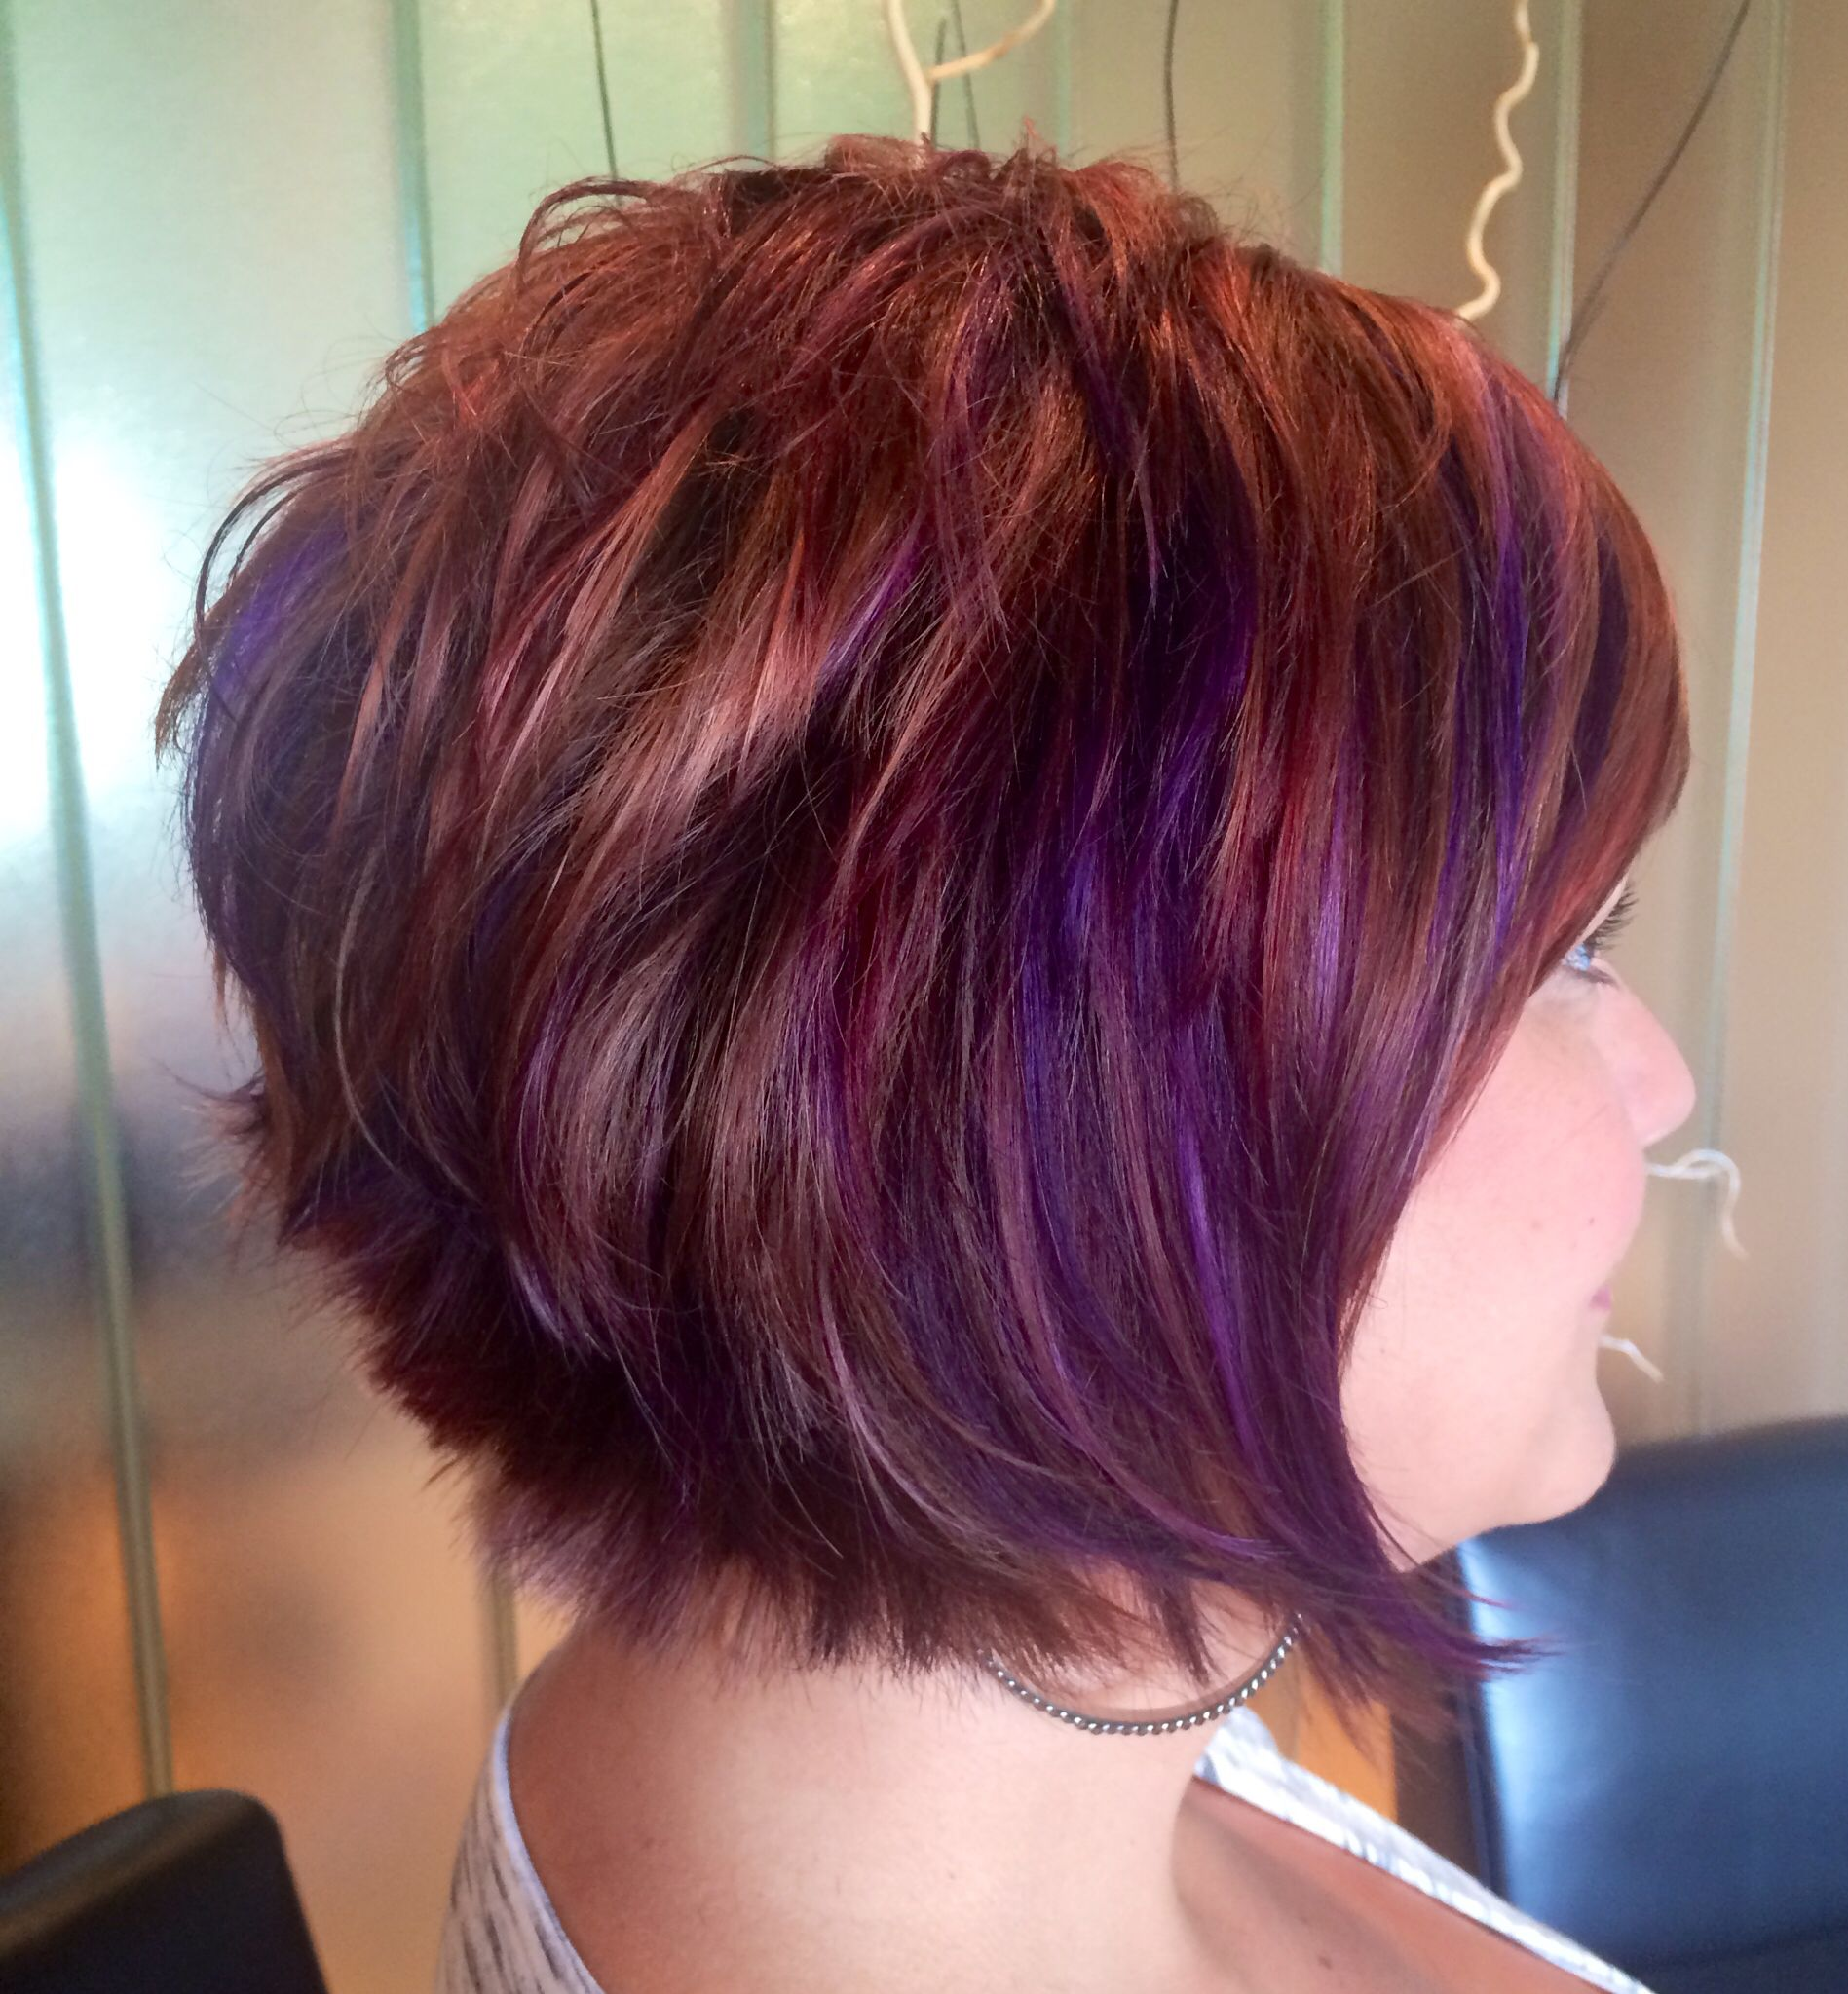 purplehair Copper Gold \u0026 Red hilights with purple panels shorthair\u2026  Hair Do\u002639;s  Pinterest